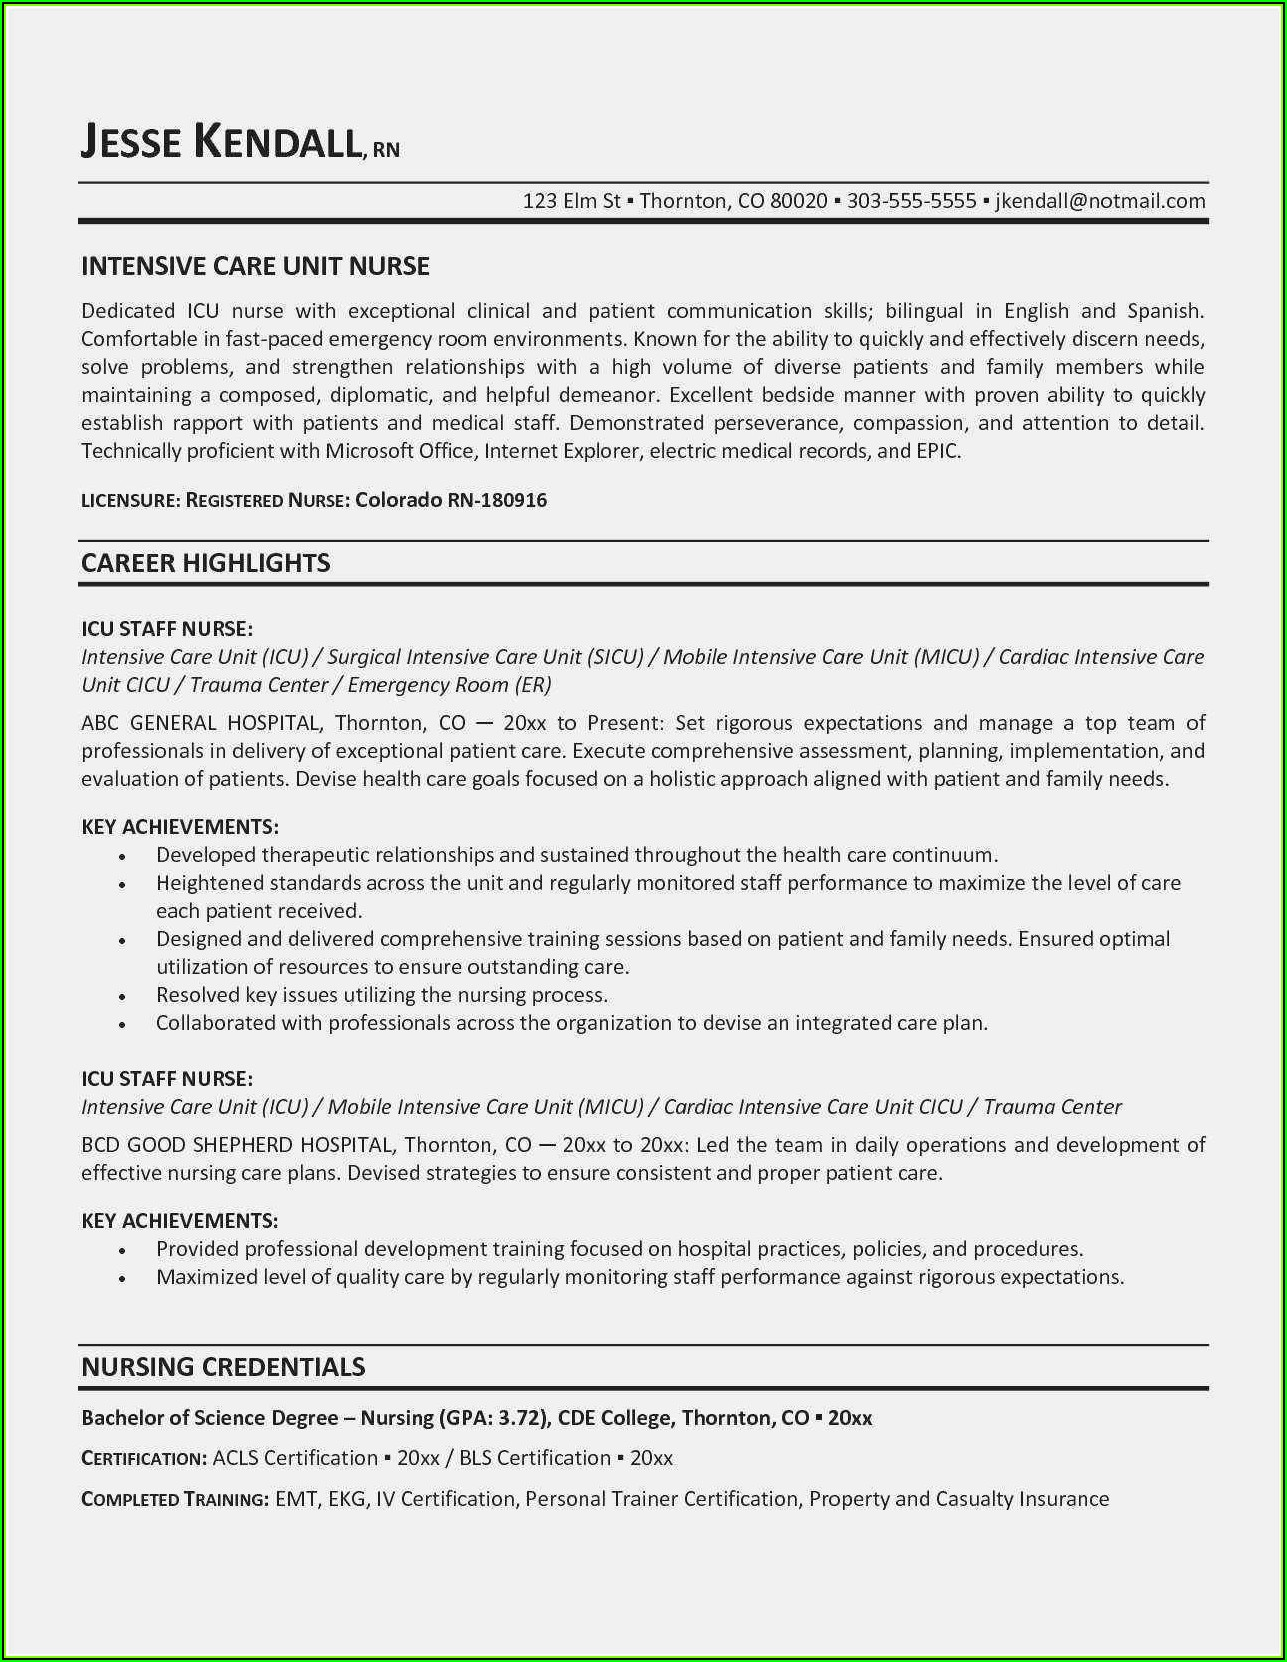 Certificate Of Insurance Request Form Template